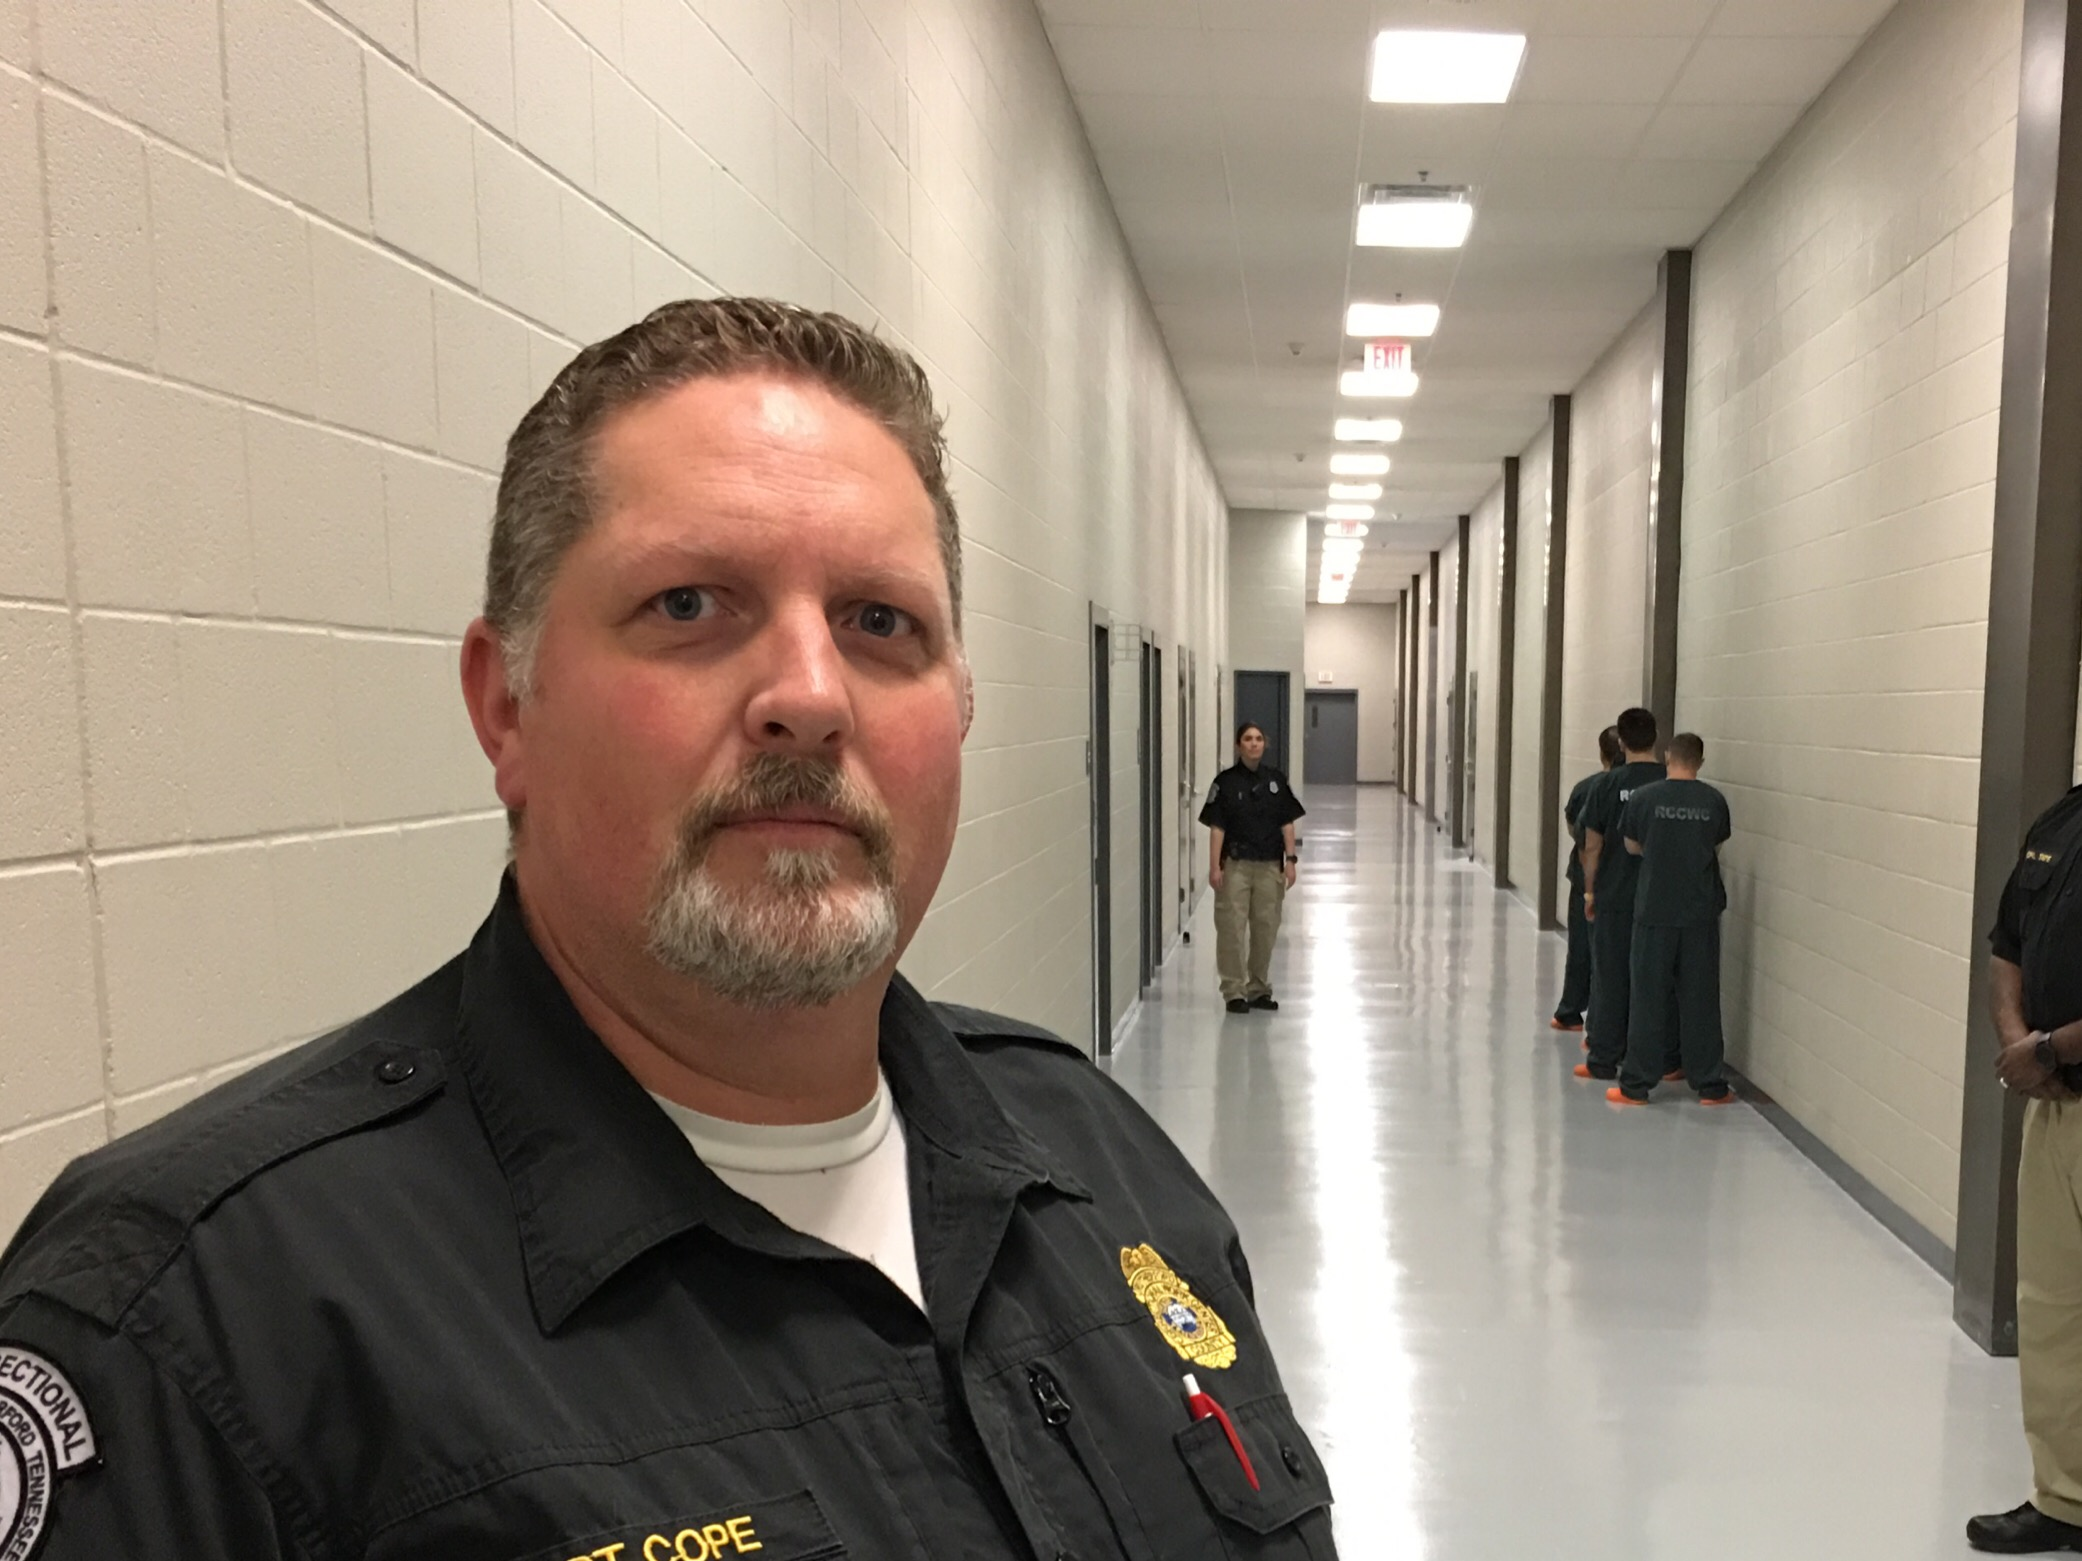 Newly appointed Superintendent of the Rutherford County Correctional Work Center